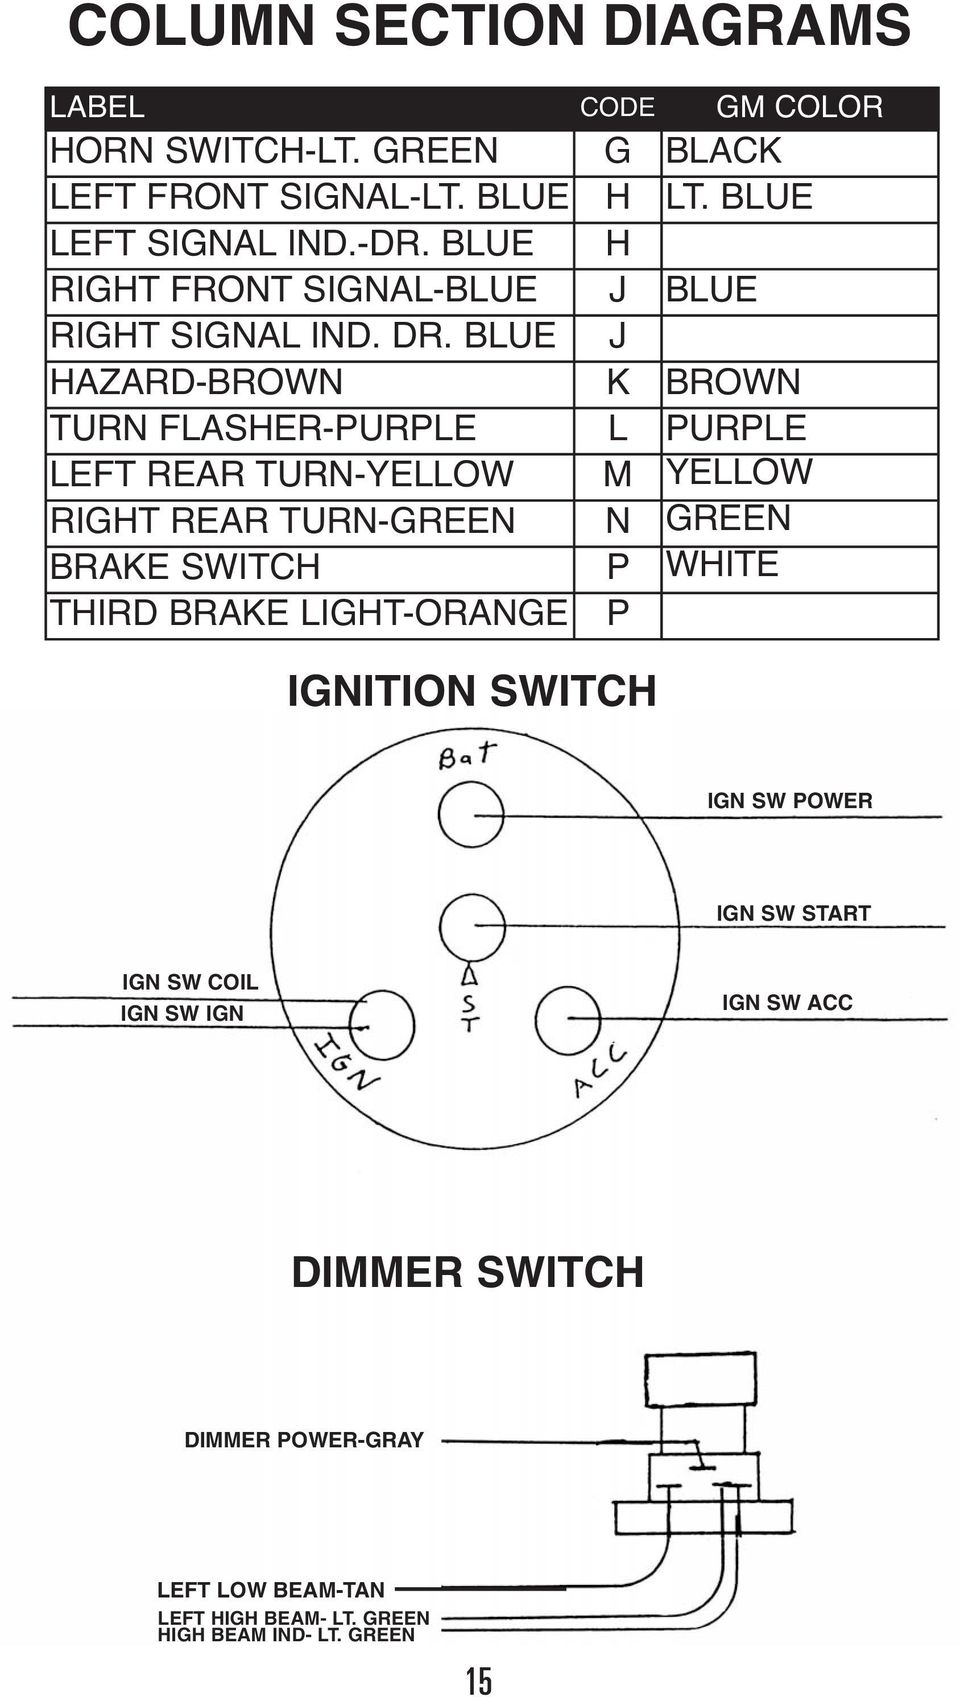 Two Signal Flashers And Pre Wired Relay Connectors For Horn Fj Cruiser Brake Light Switch Wiring Diagram Blue J Hazard Brown K Turn Flasher Purple L Left Rear